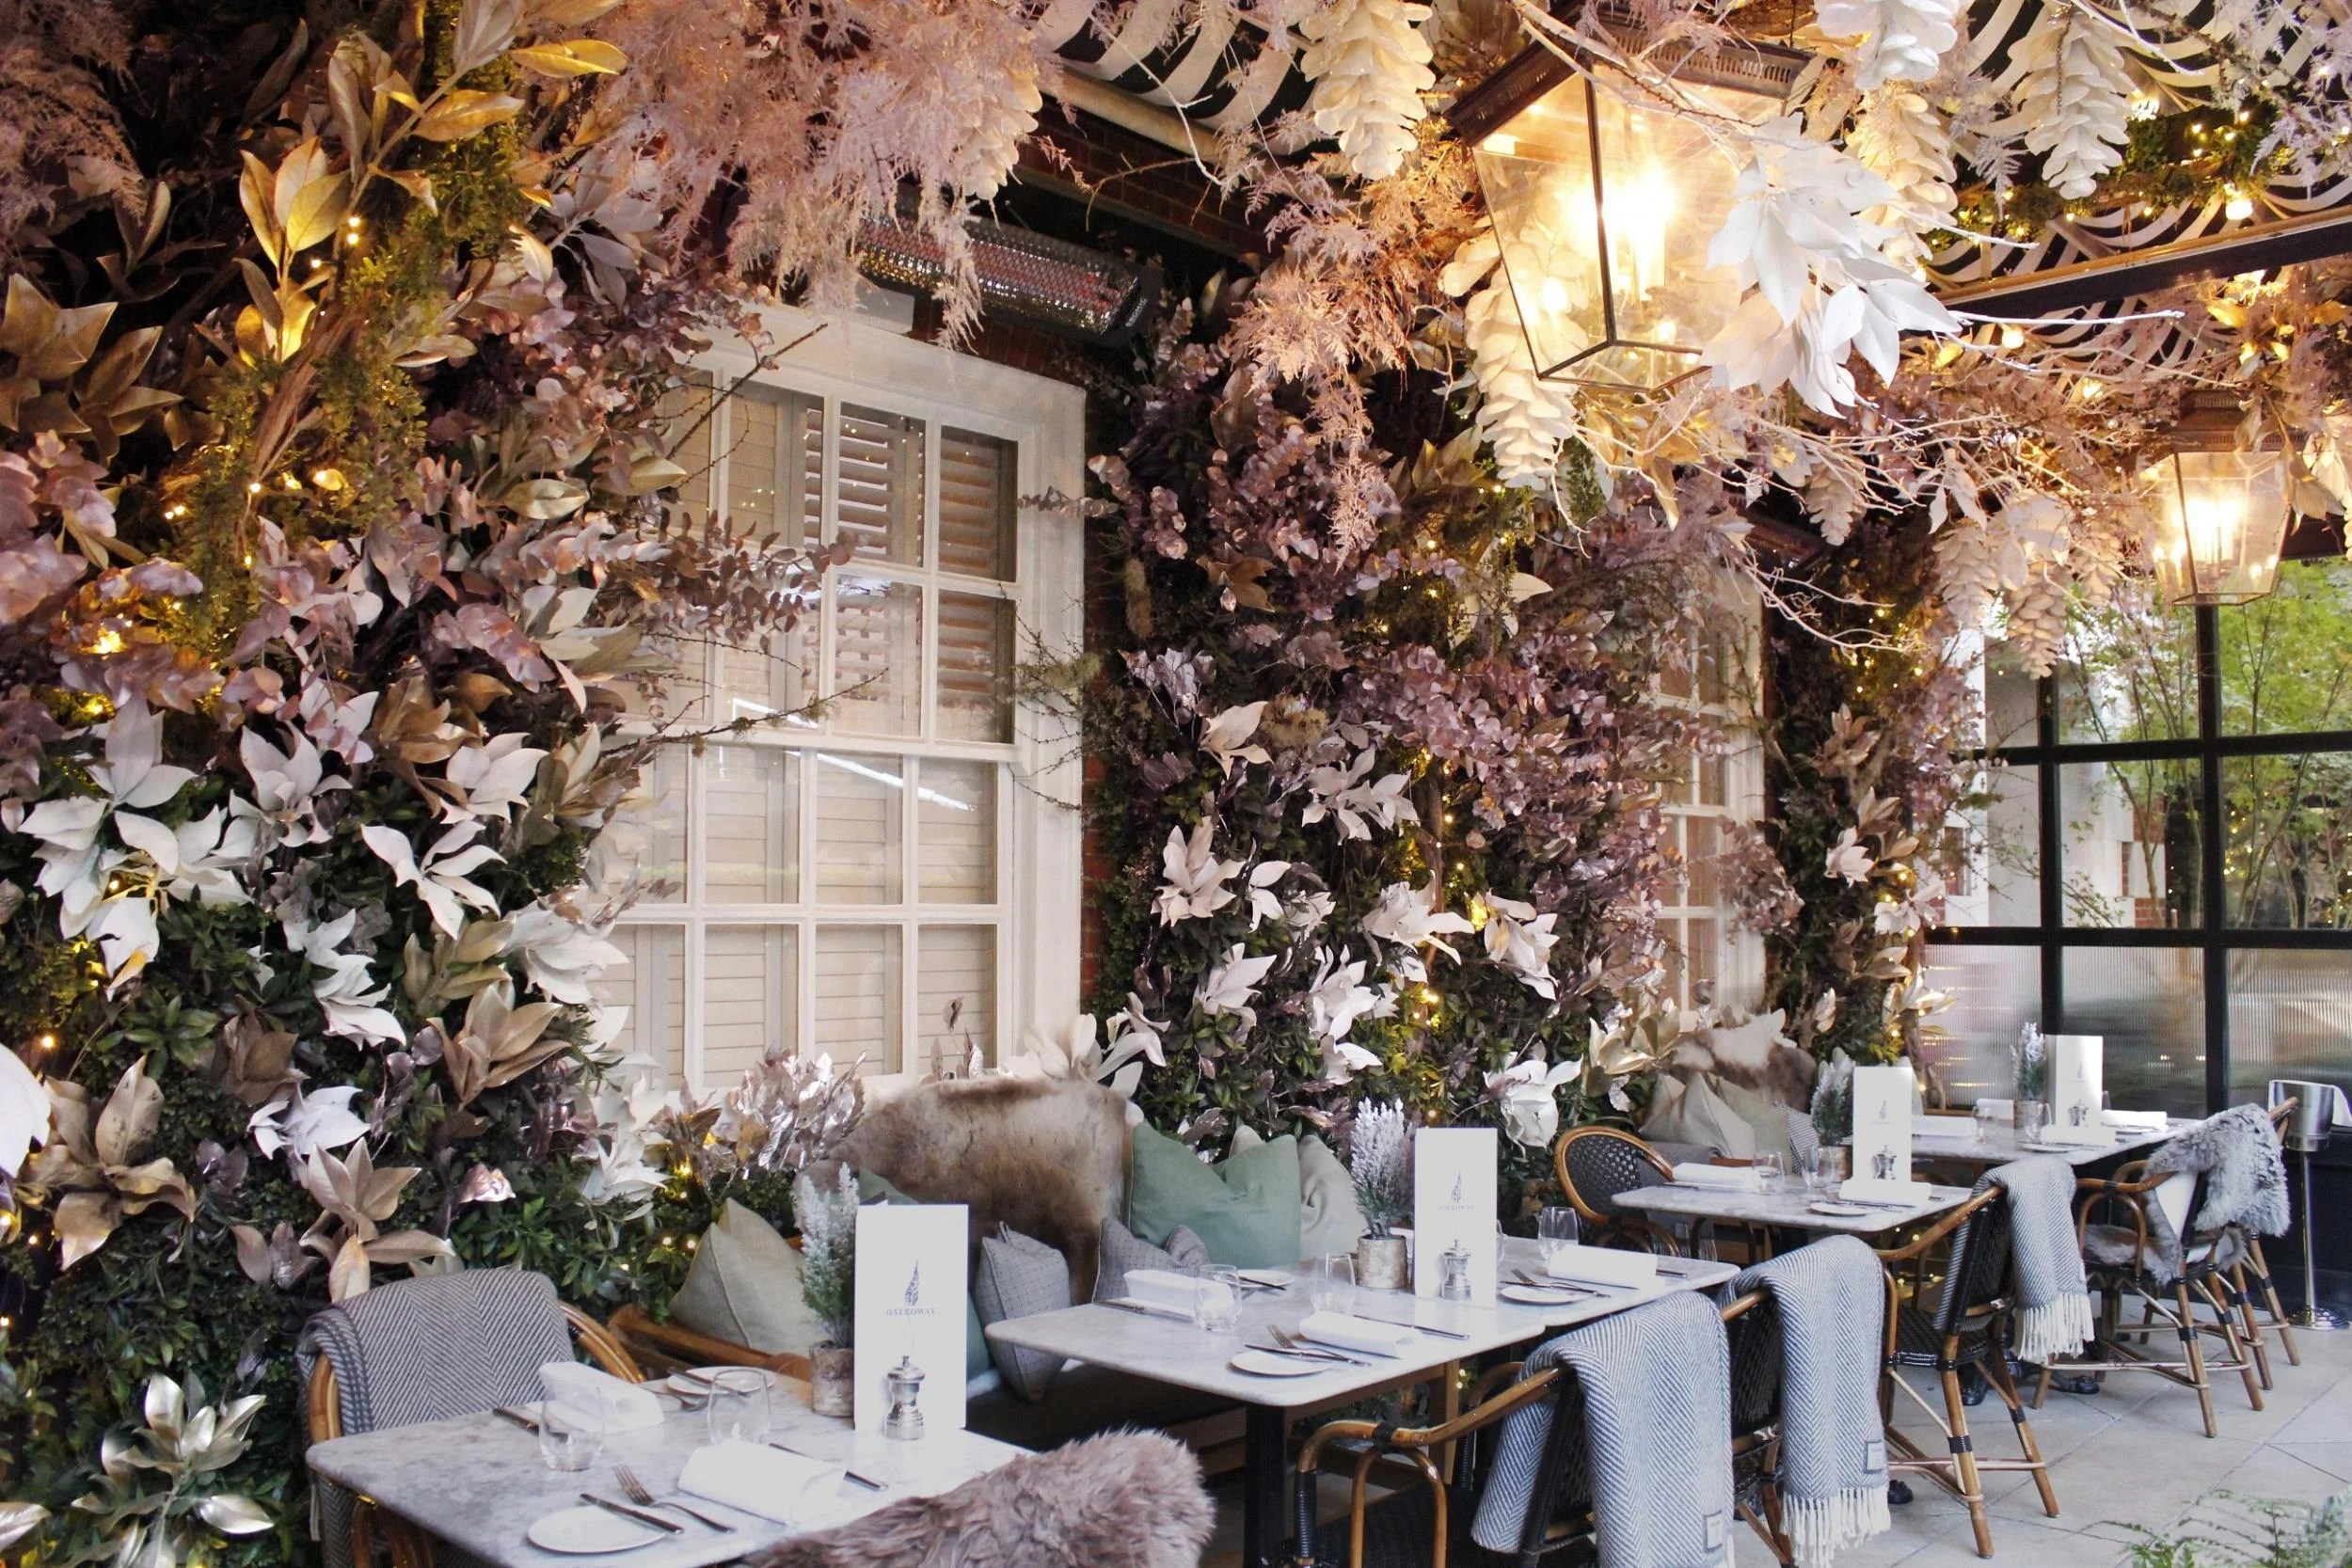 Festive Restaurants In London To Get You In The Christmas